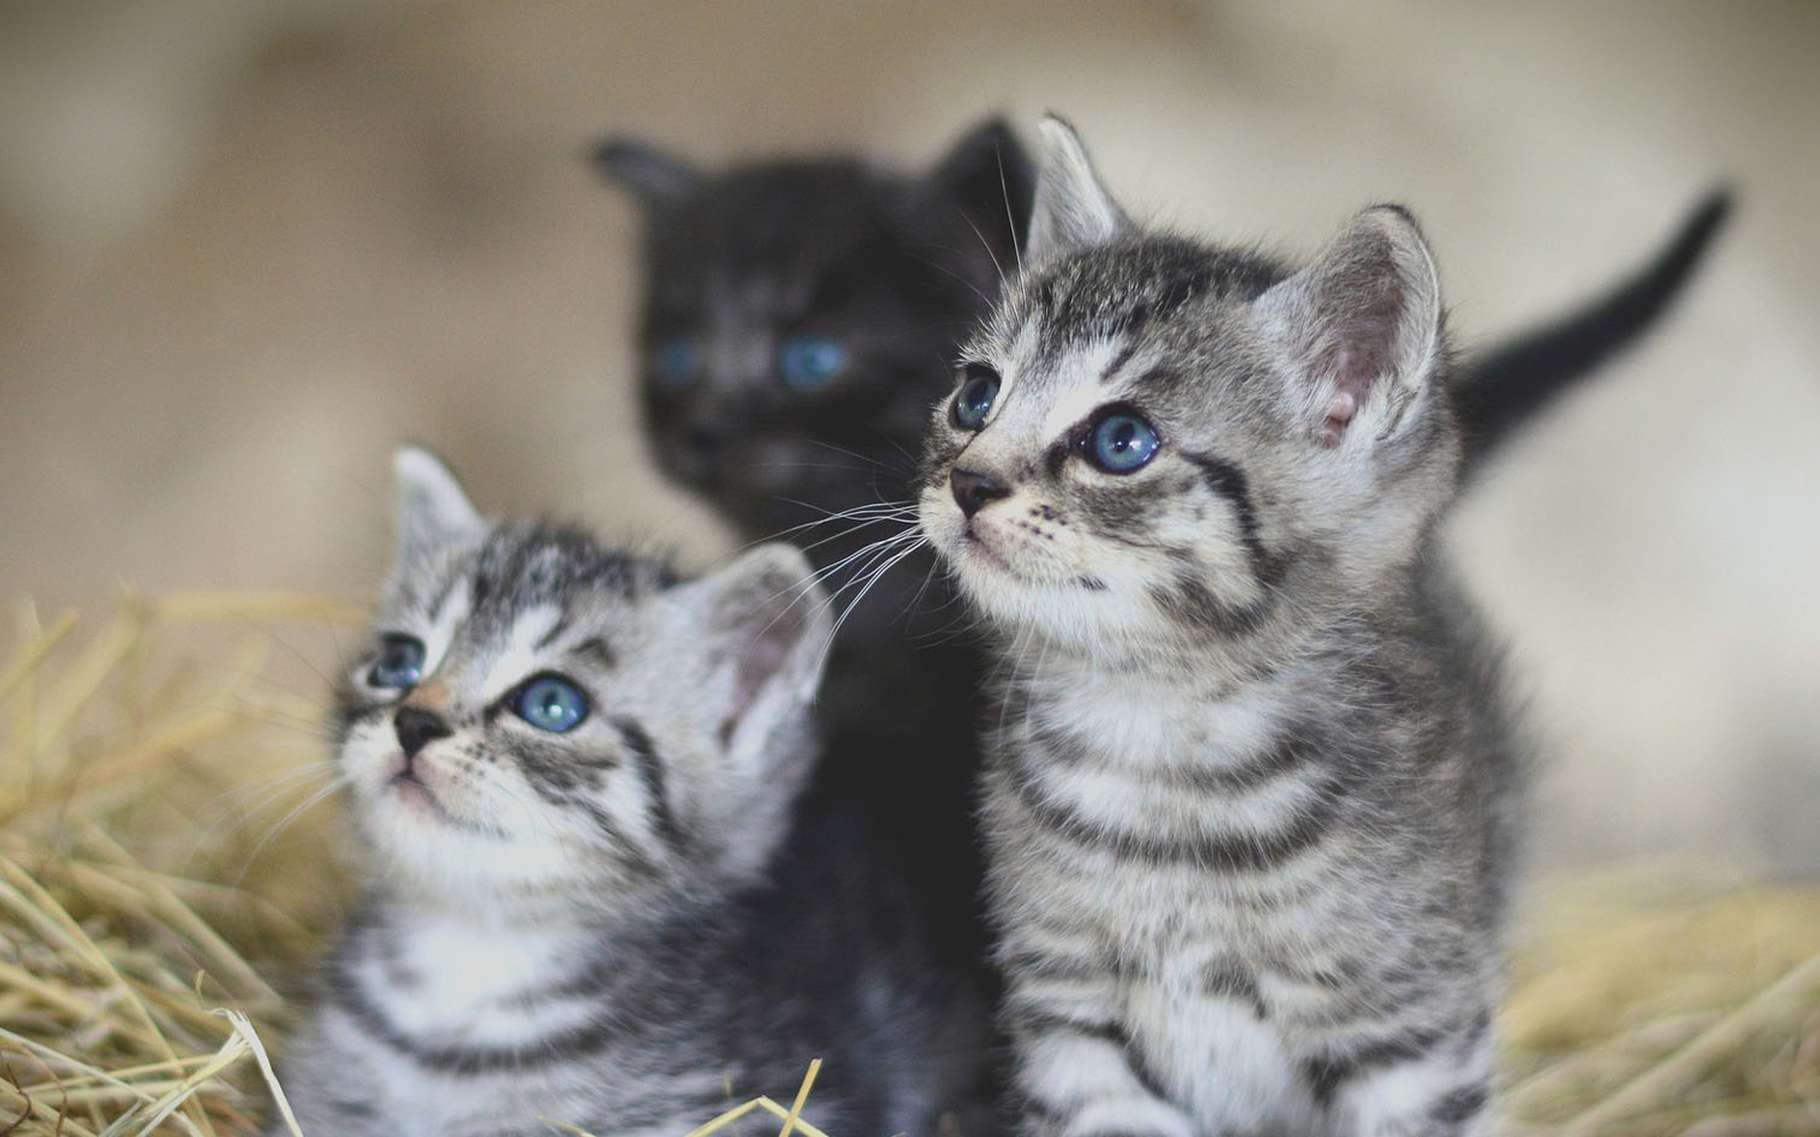 Adorables chatons. © Congerdesign, Pixabay, DP